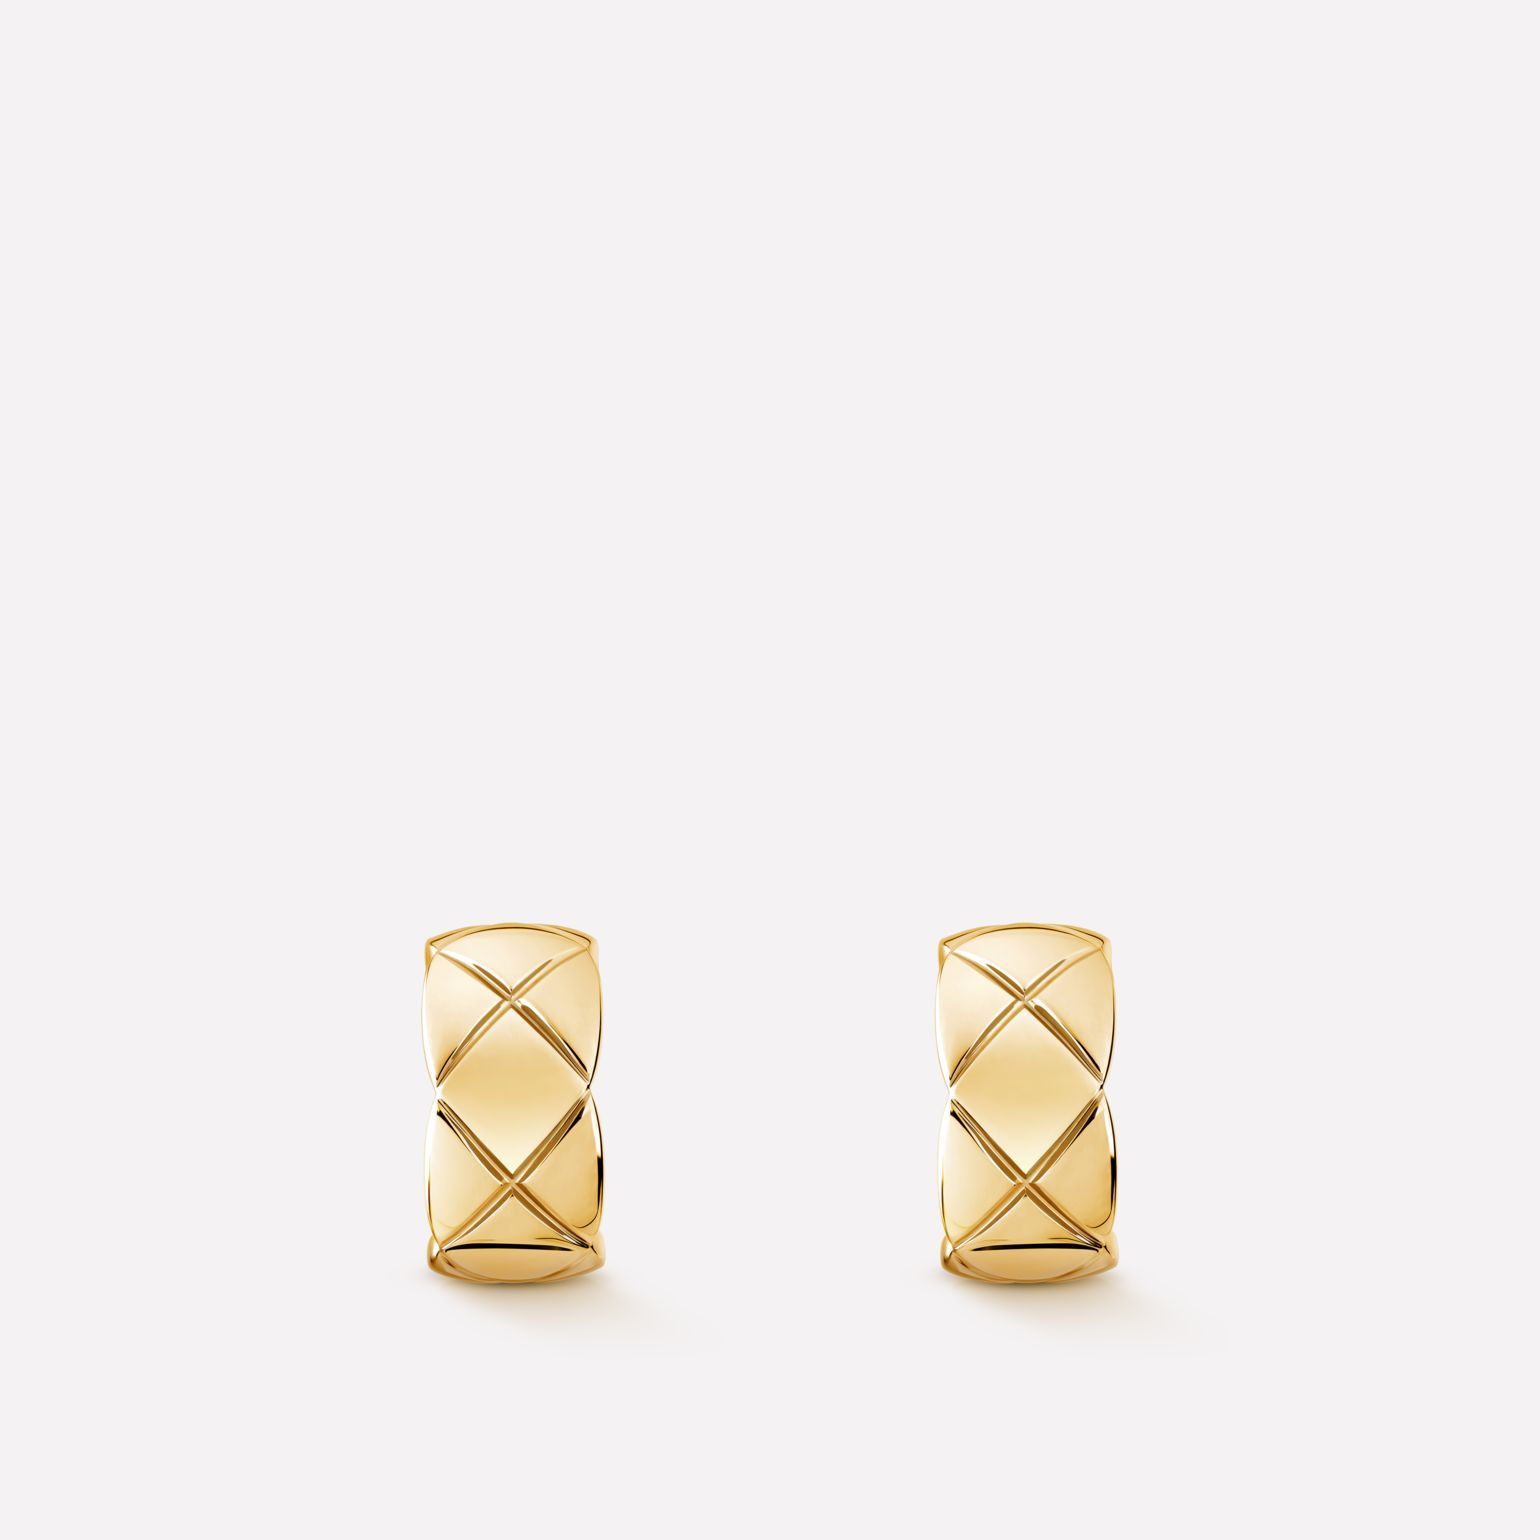 Coco Crush earrings Quilted motif, 18K yellow gold